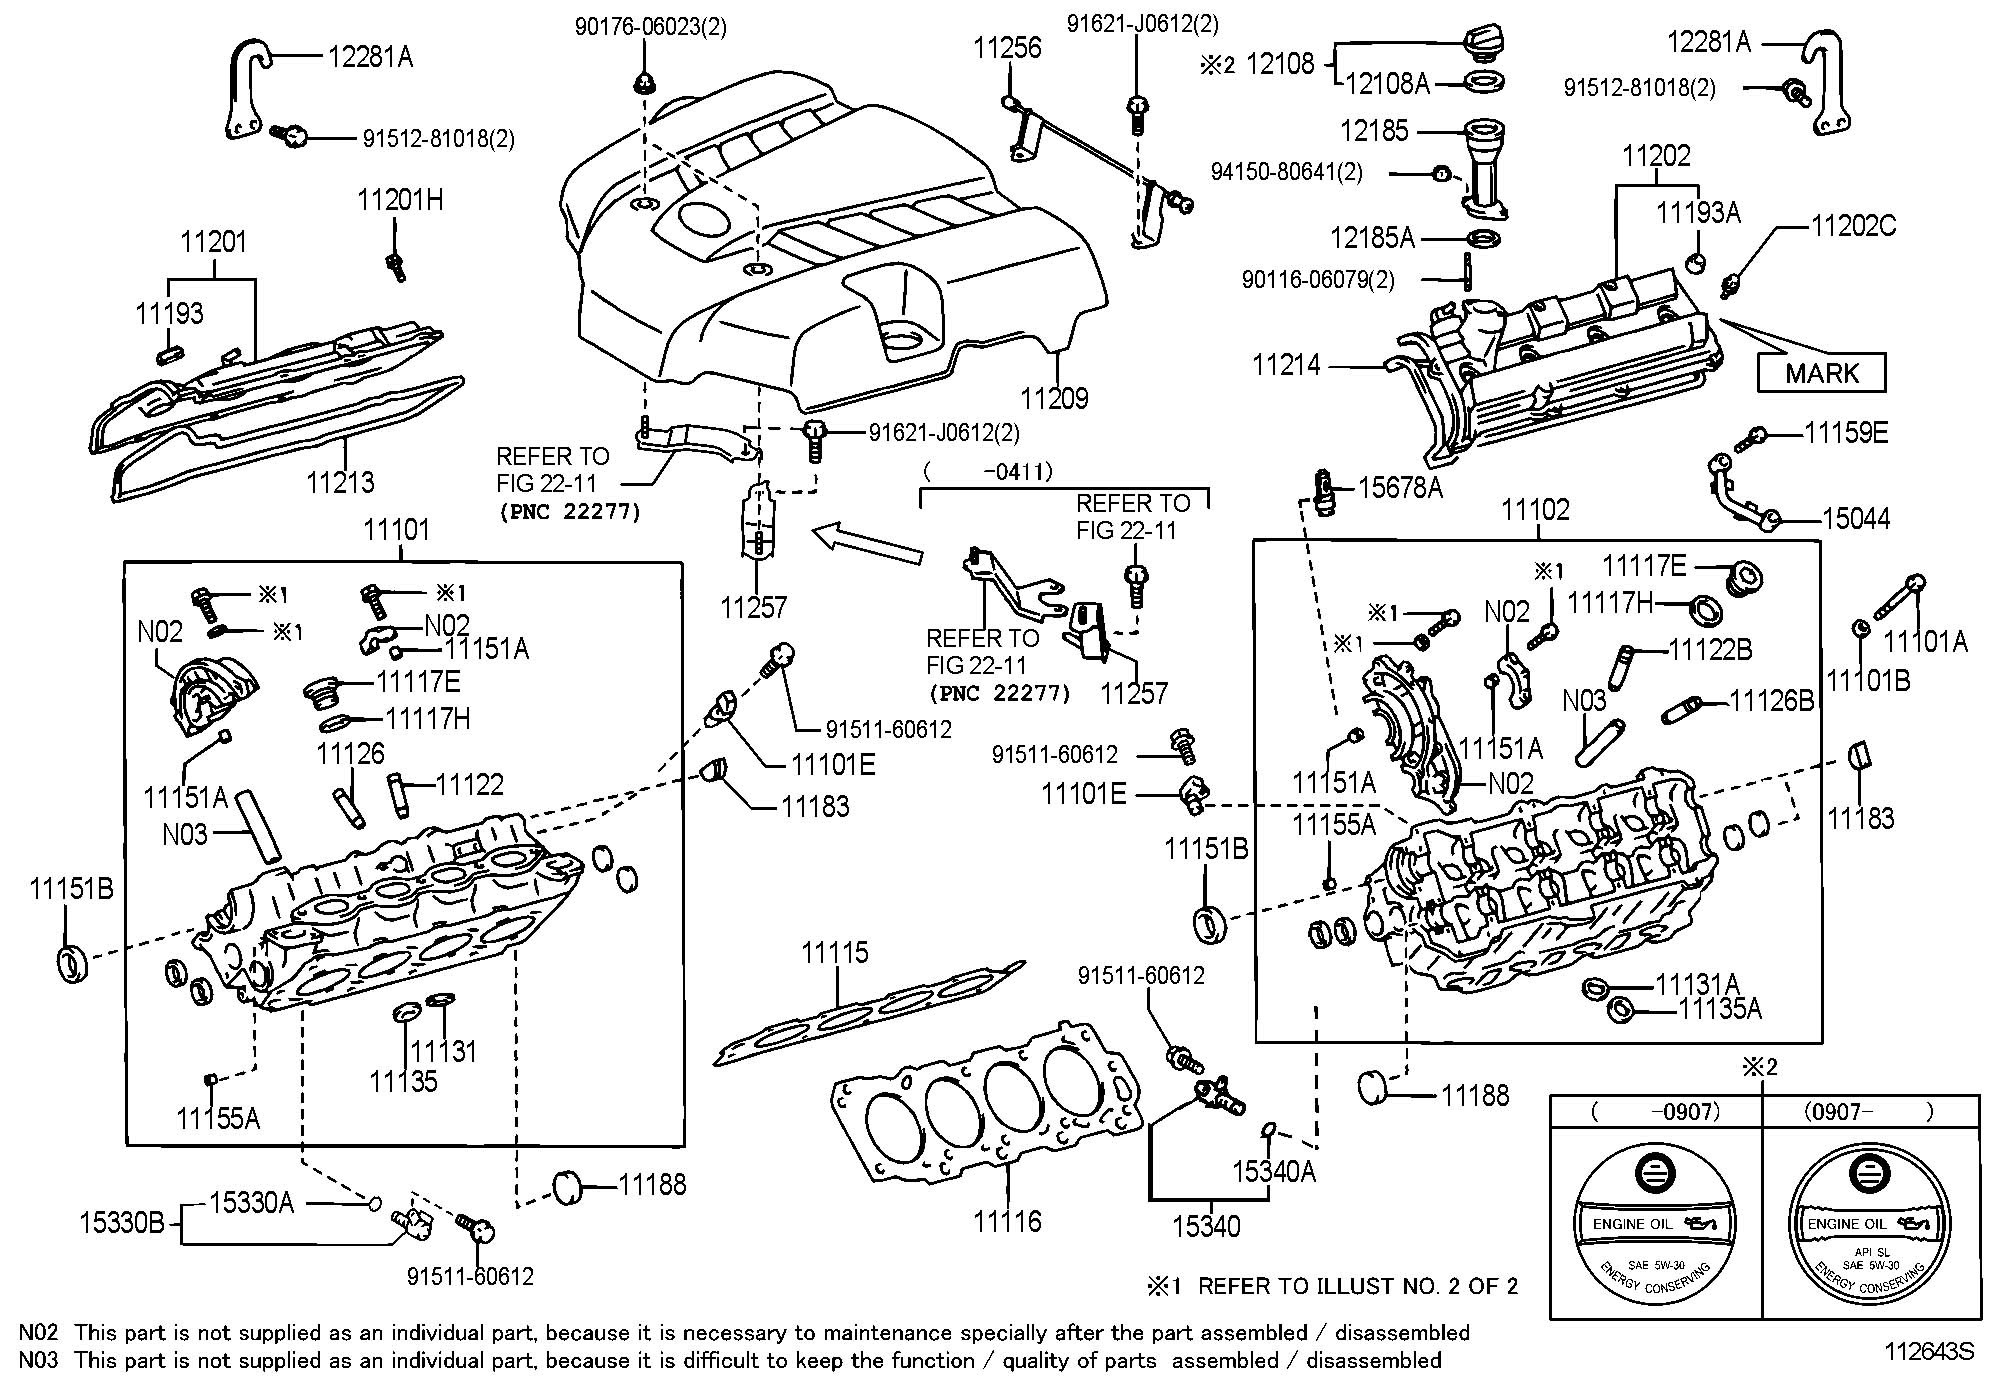 Lexus Rx330 Schematic Great Design Of Wiring Diagram 2004 Fuse Box Diagrams 2005 U2022 For Free